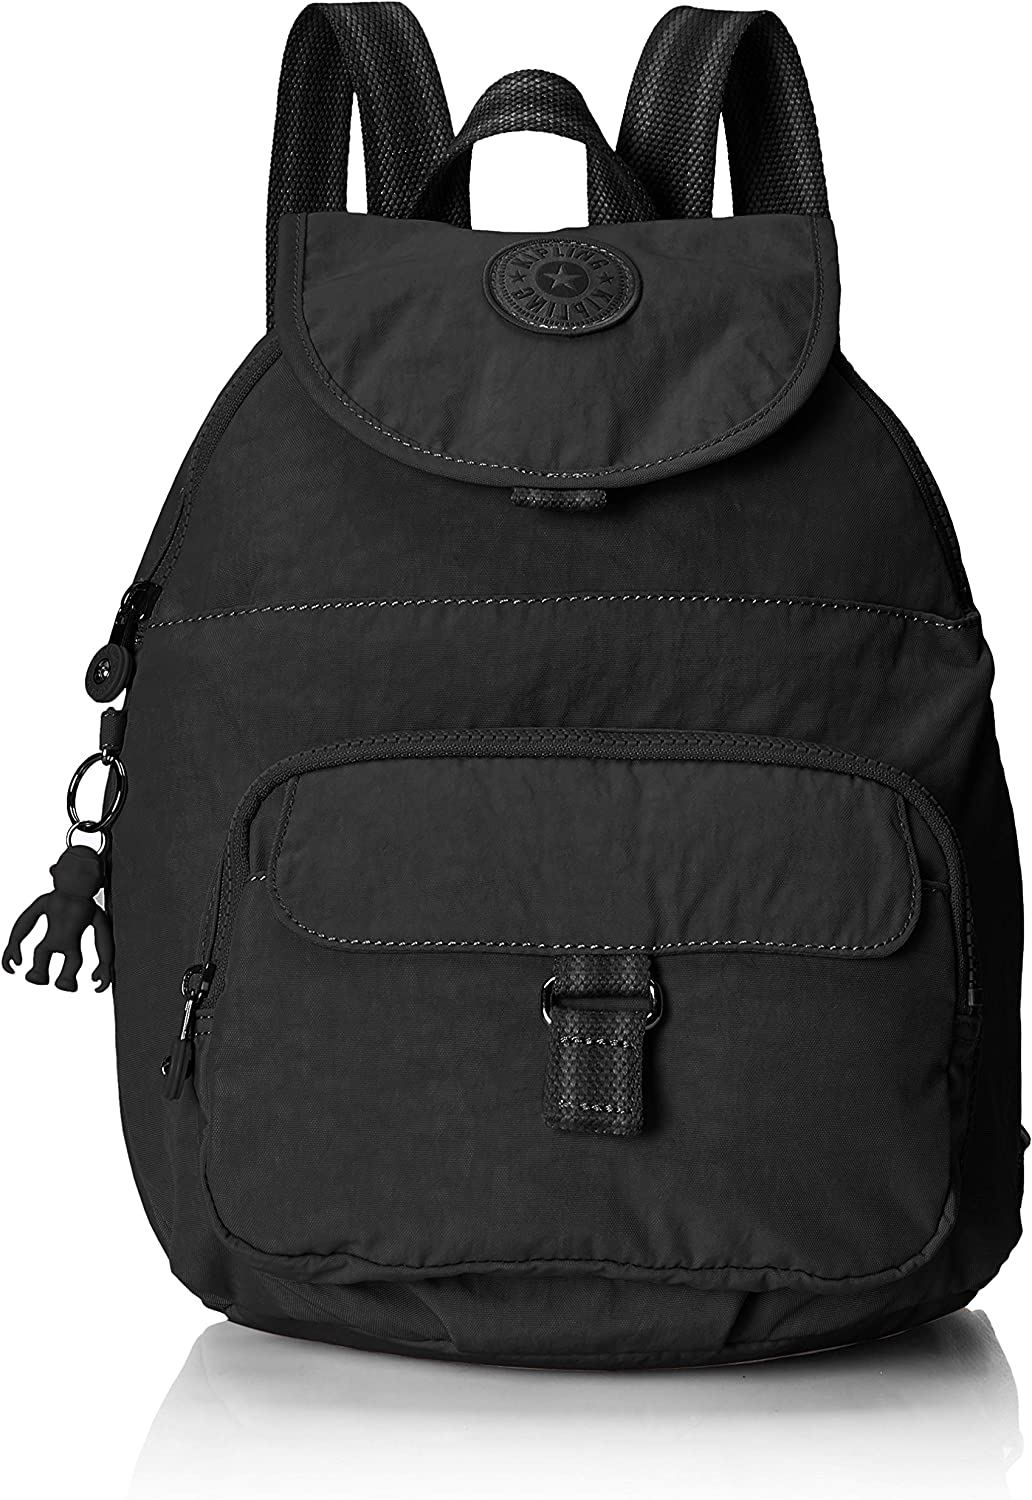 Kipling Queenie Small Backpack